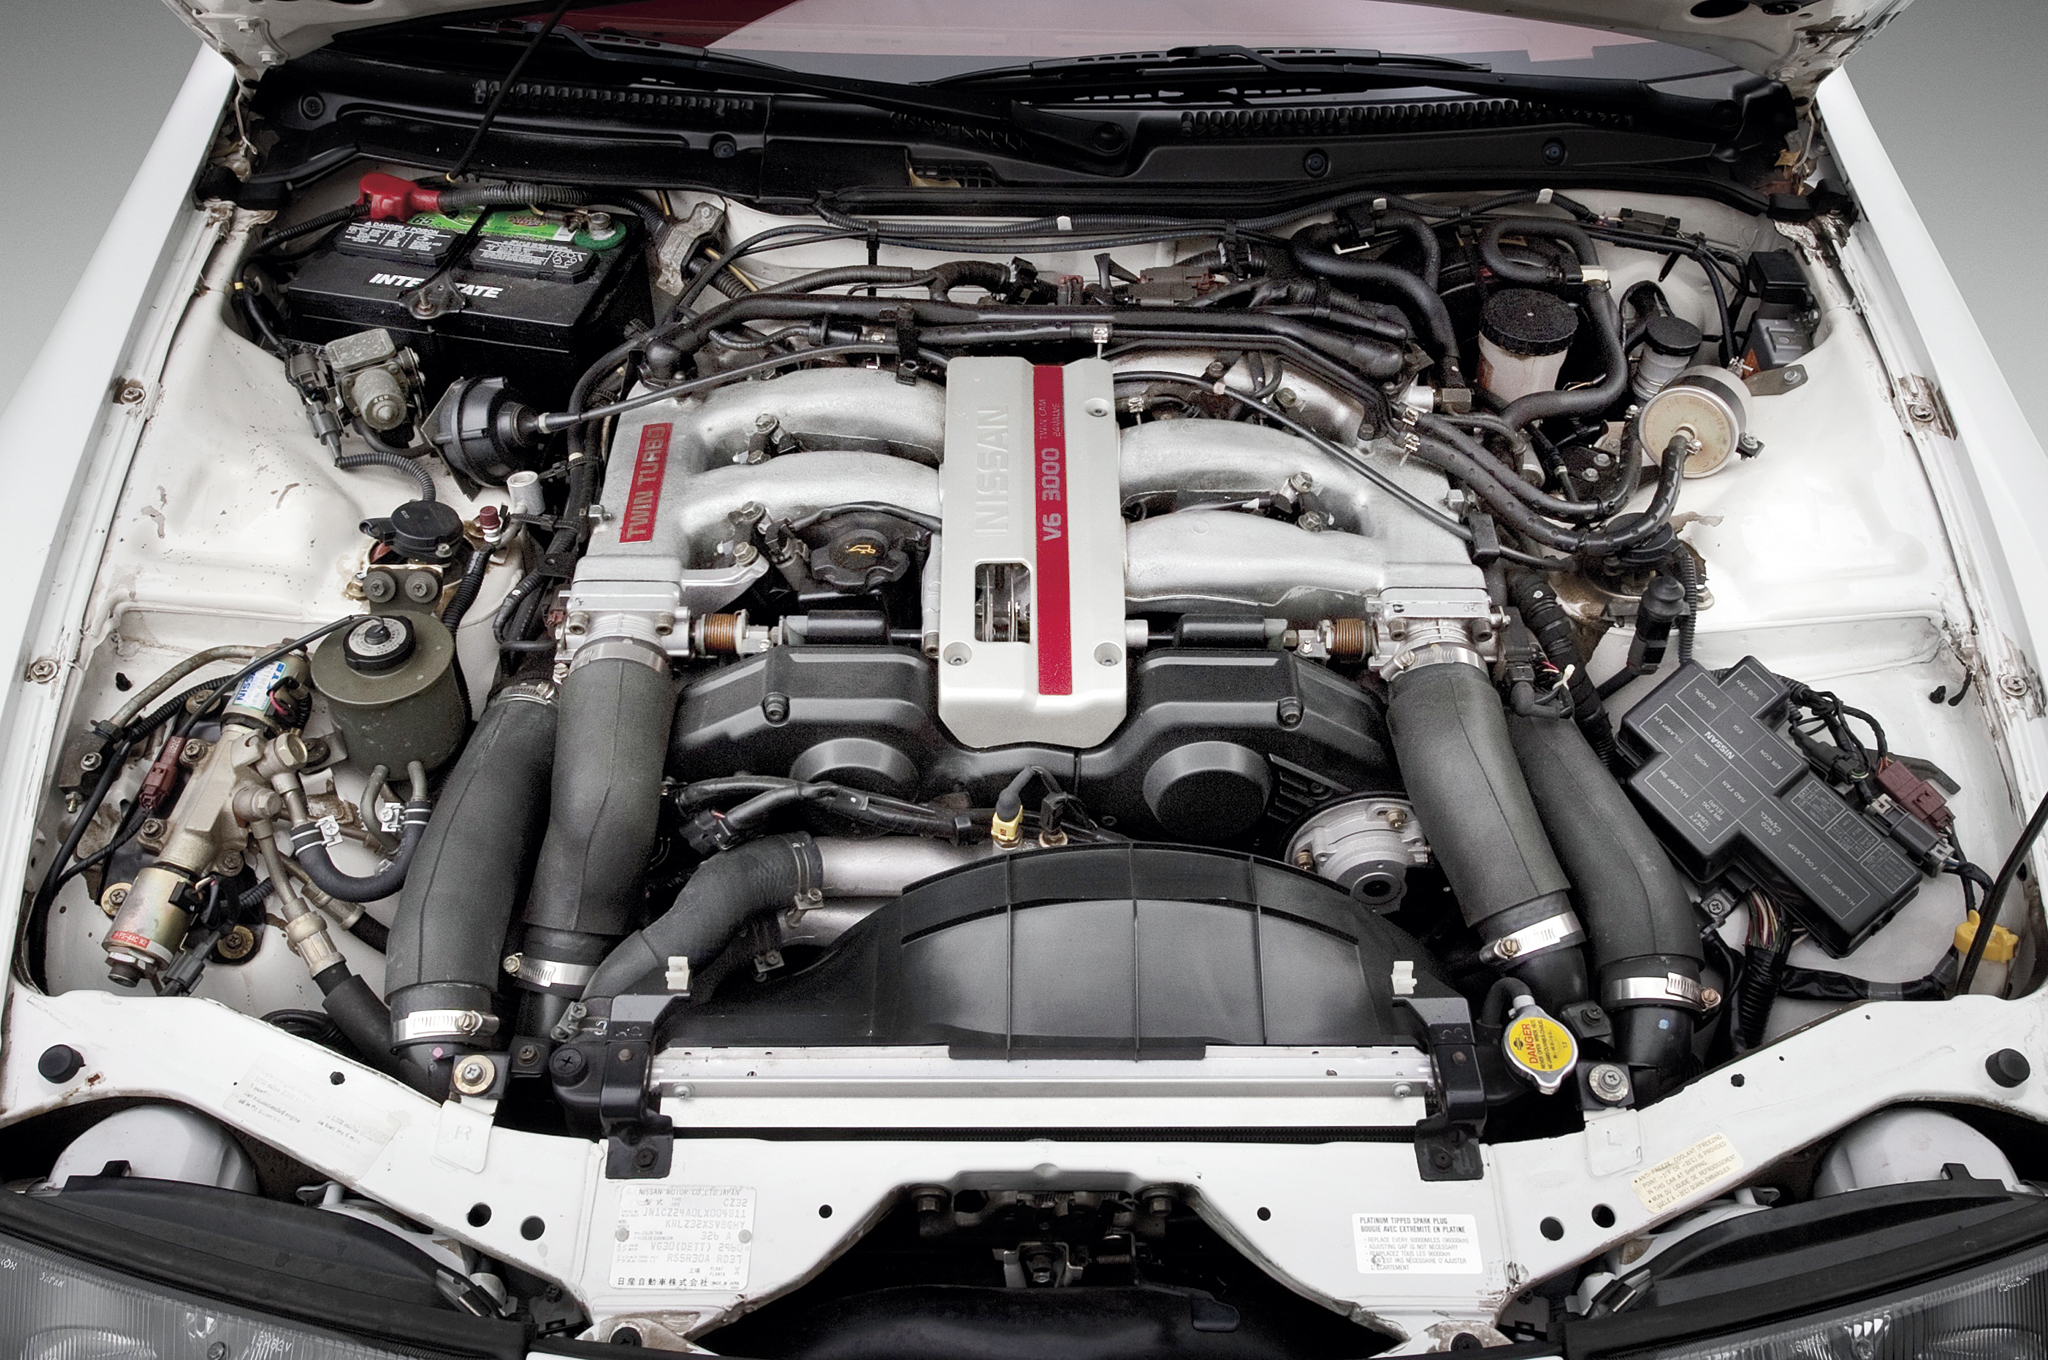 medium resolution of wiring diagram besides nissan 300zx engine bay also 300zx engine wiring diagram for you